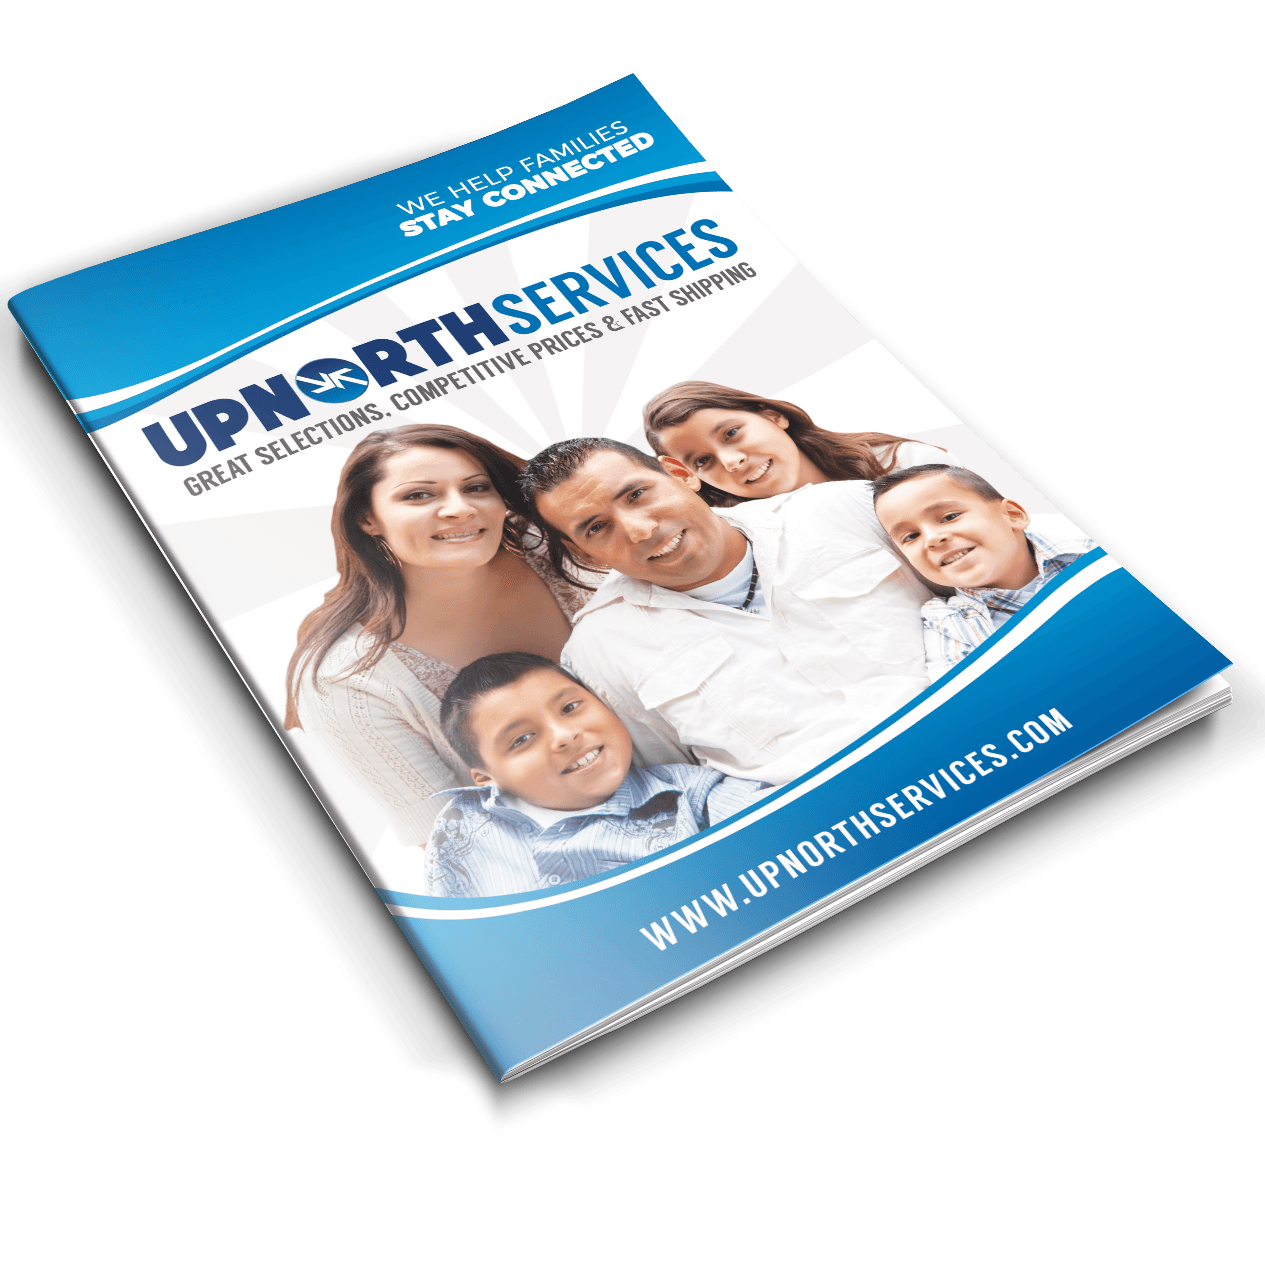 UpNorth Services NYS Inmate Catalog